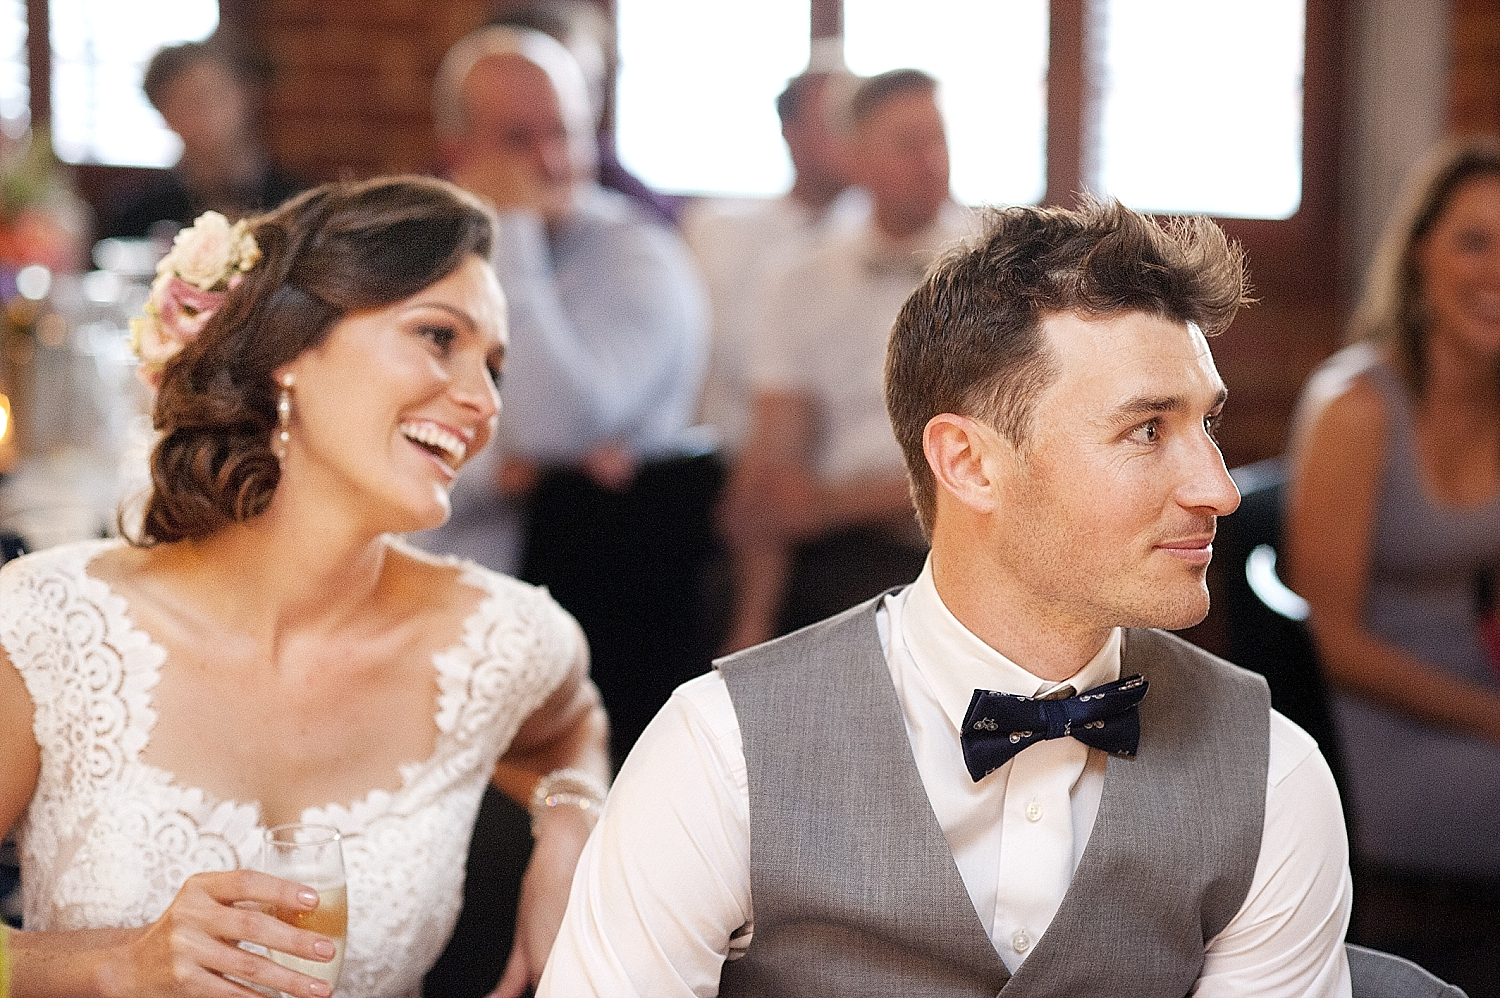 82 relaxed wedding photography perth 098.jpg